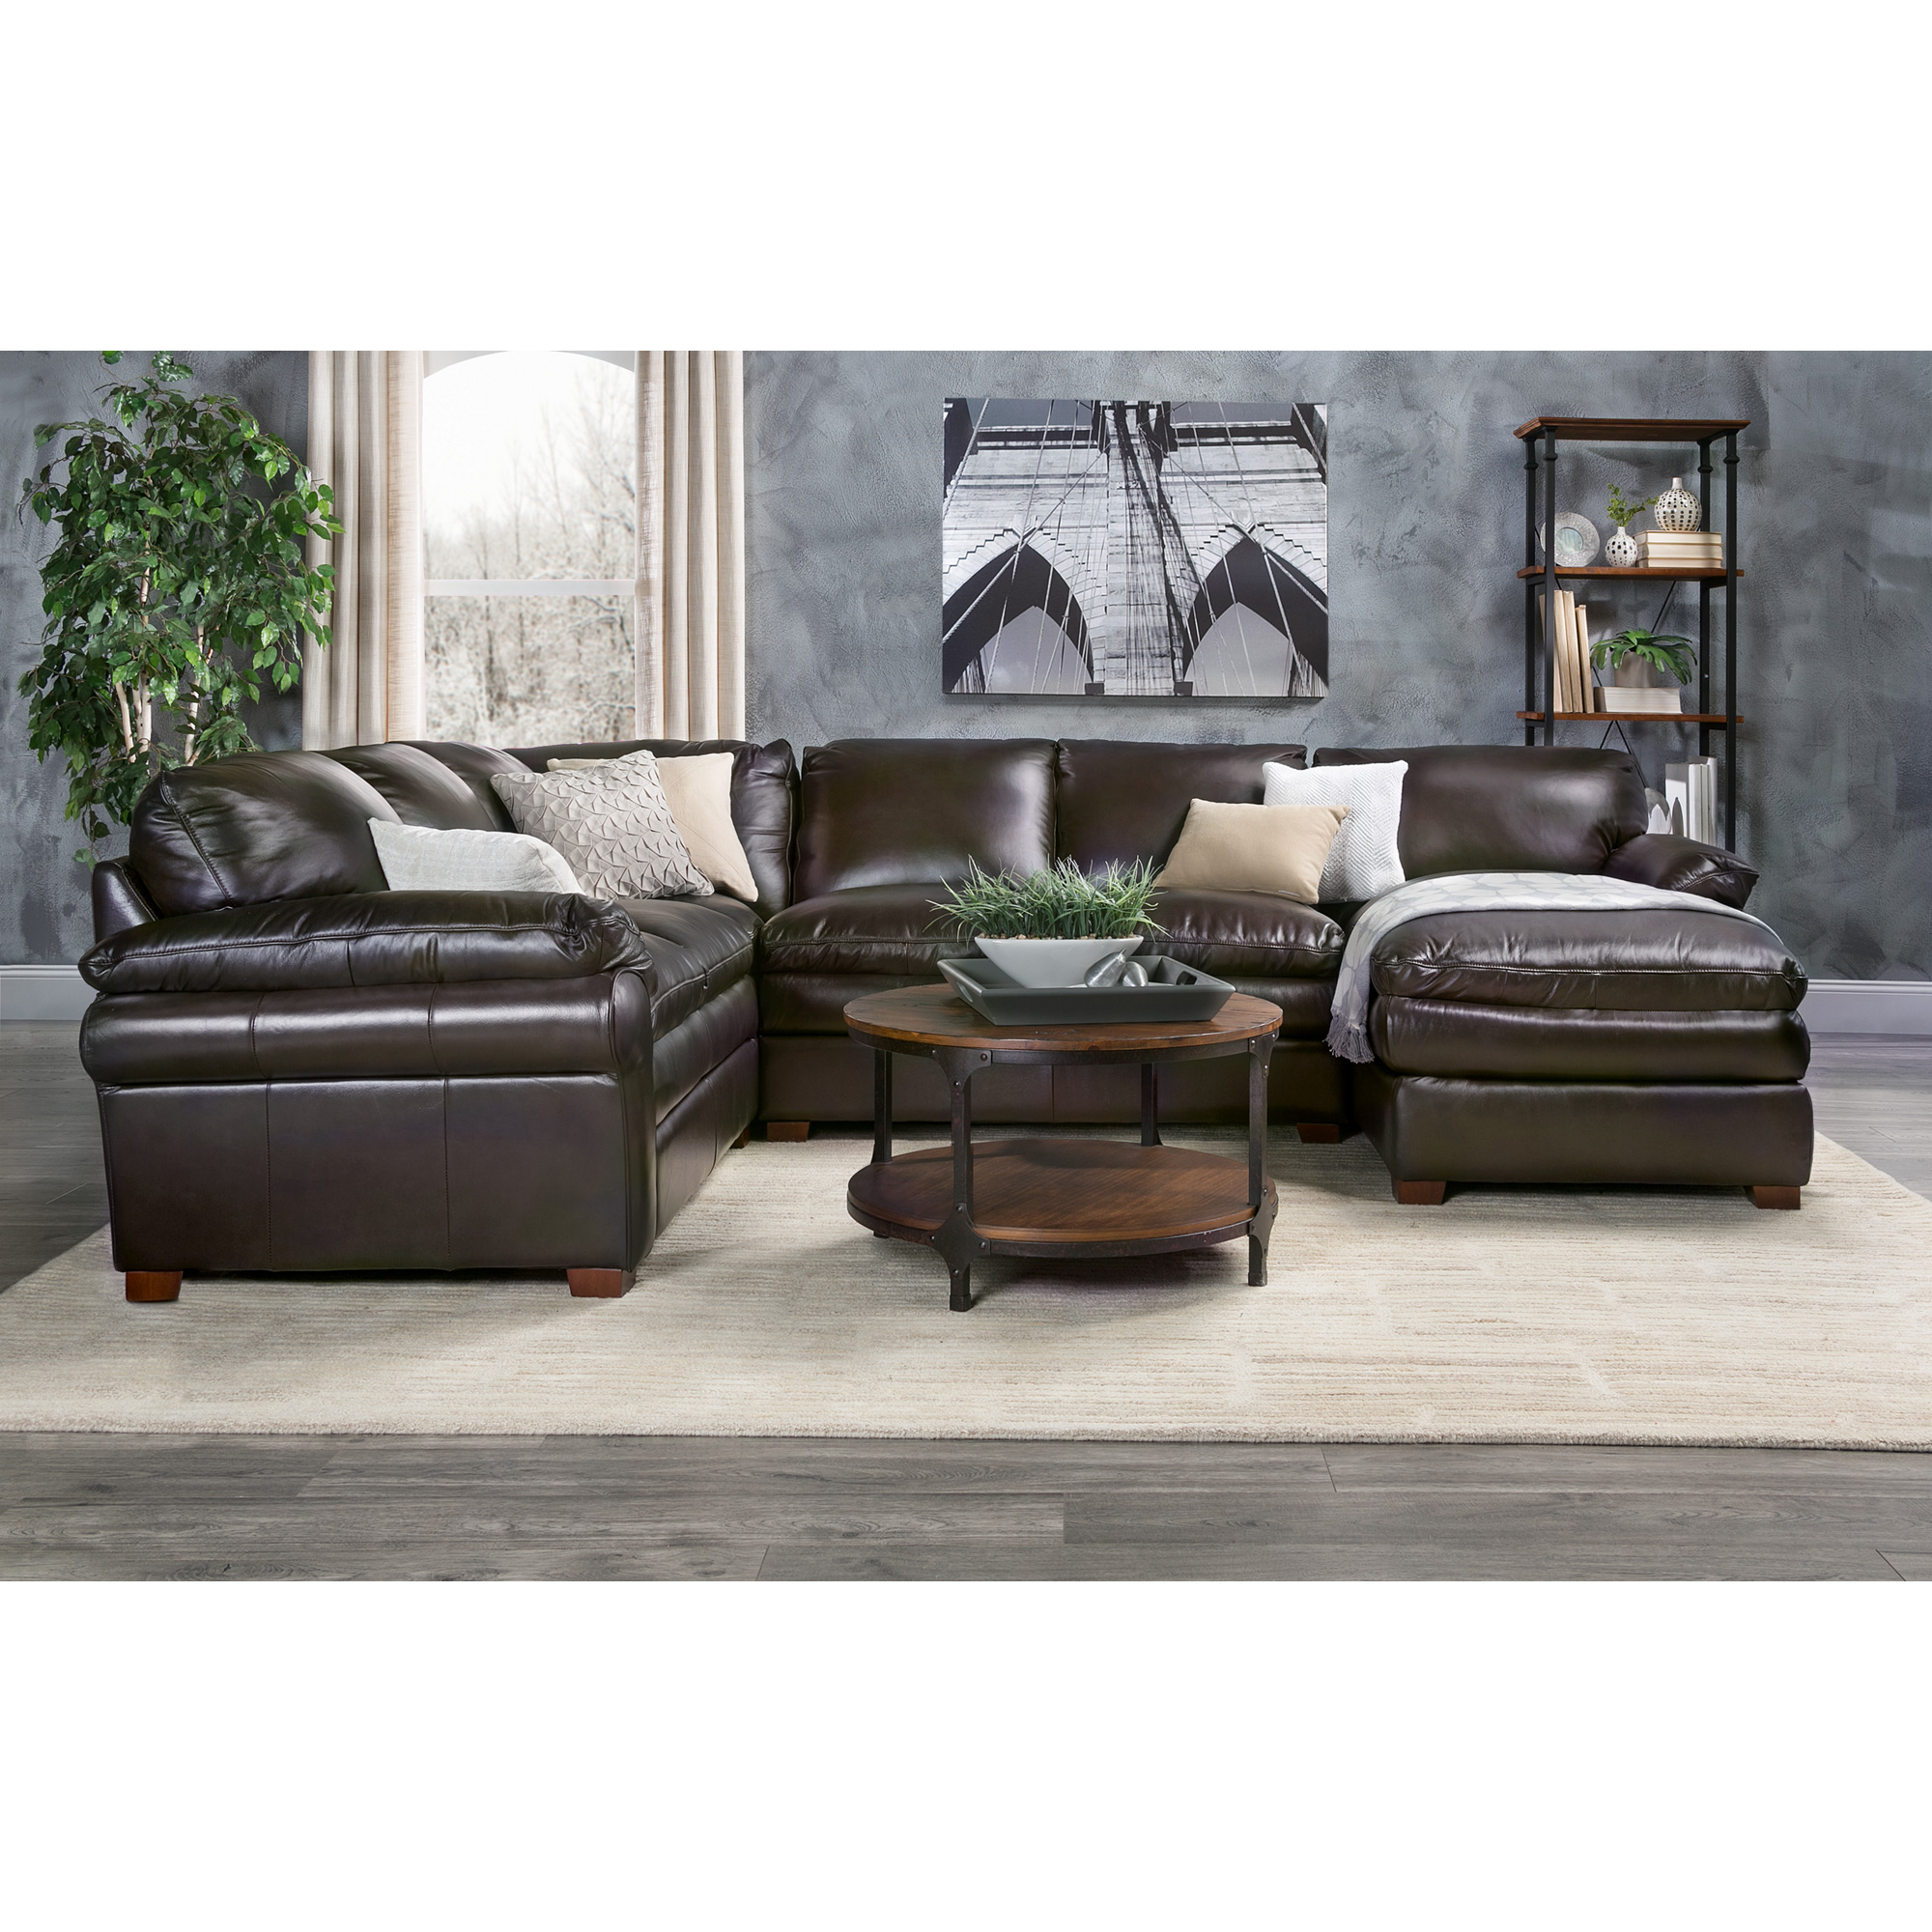 Futura Leather | Moldova Brown Right Arm Chaise Sectional Sofa